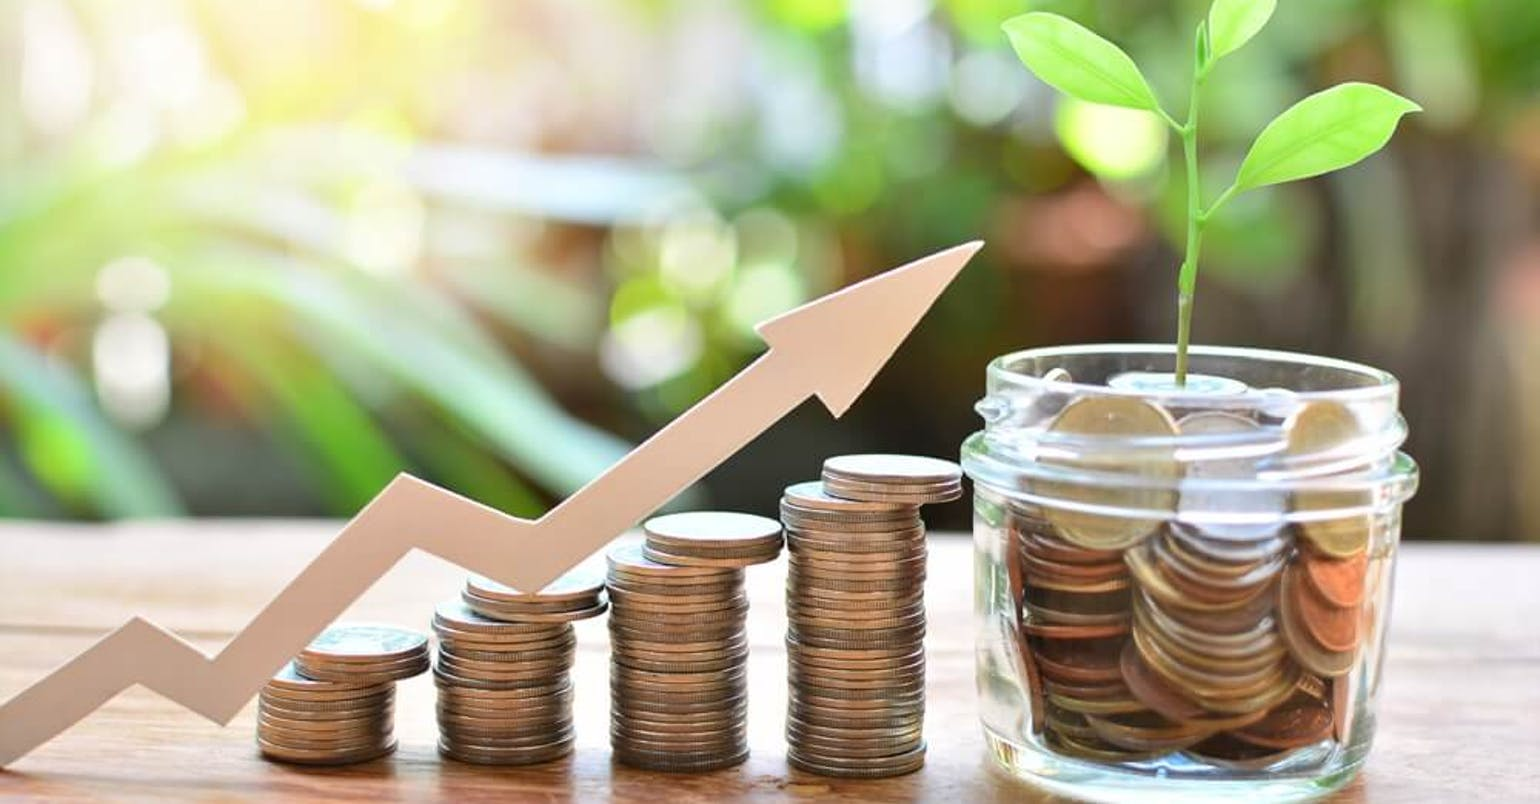 Money saving setting growth up increase to interest for concept investment fund finance and business